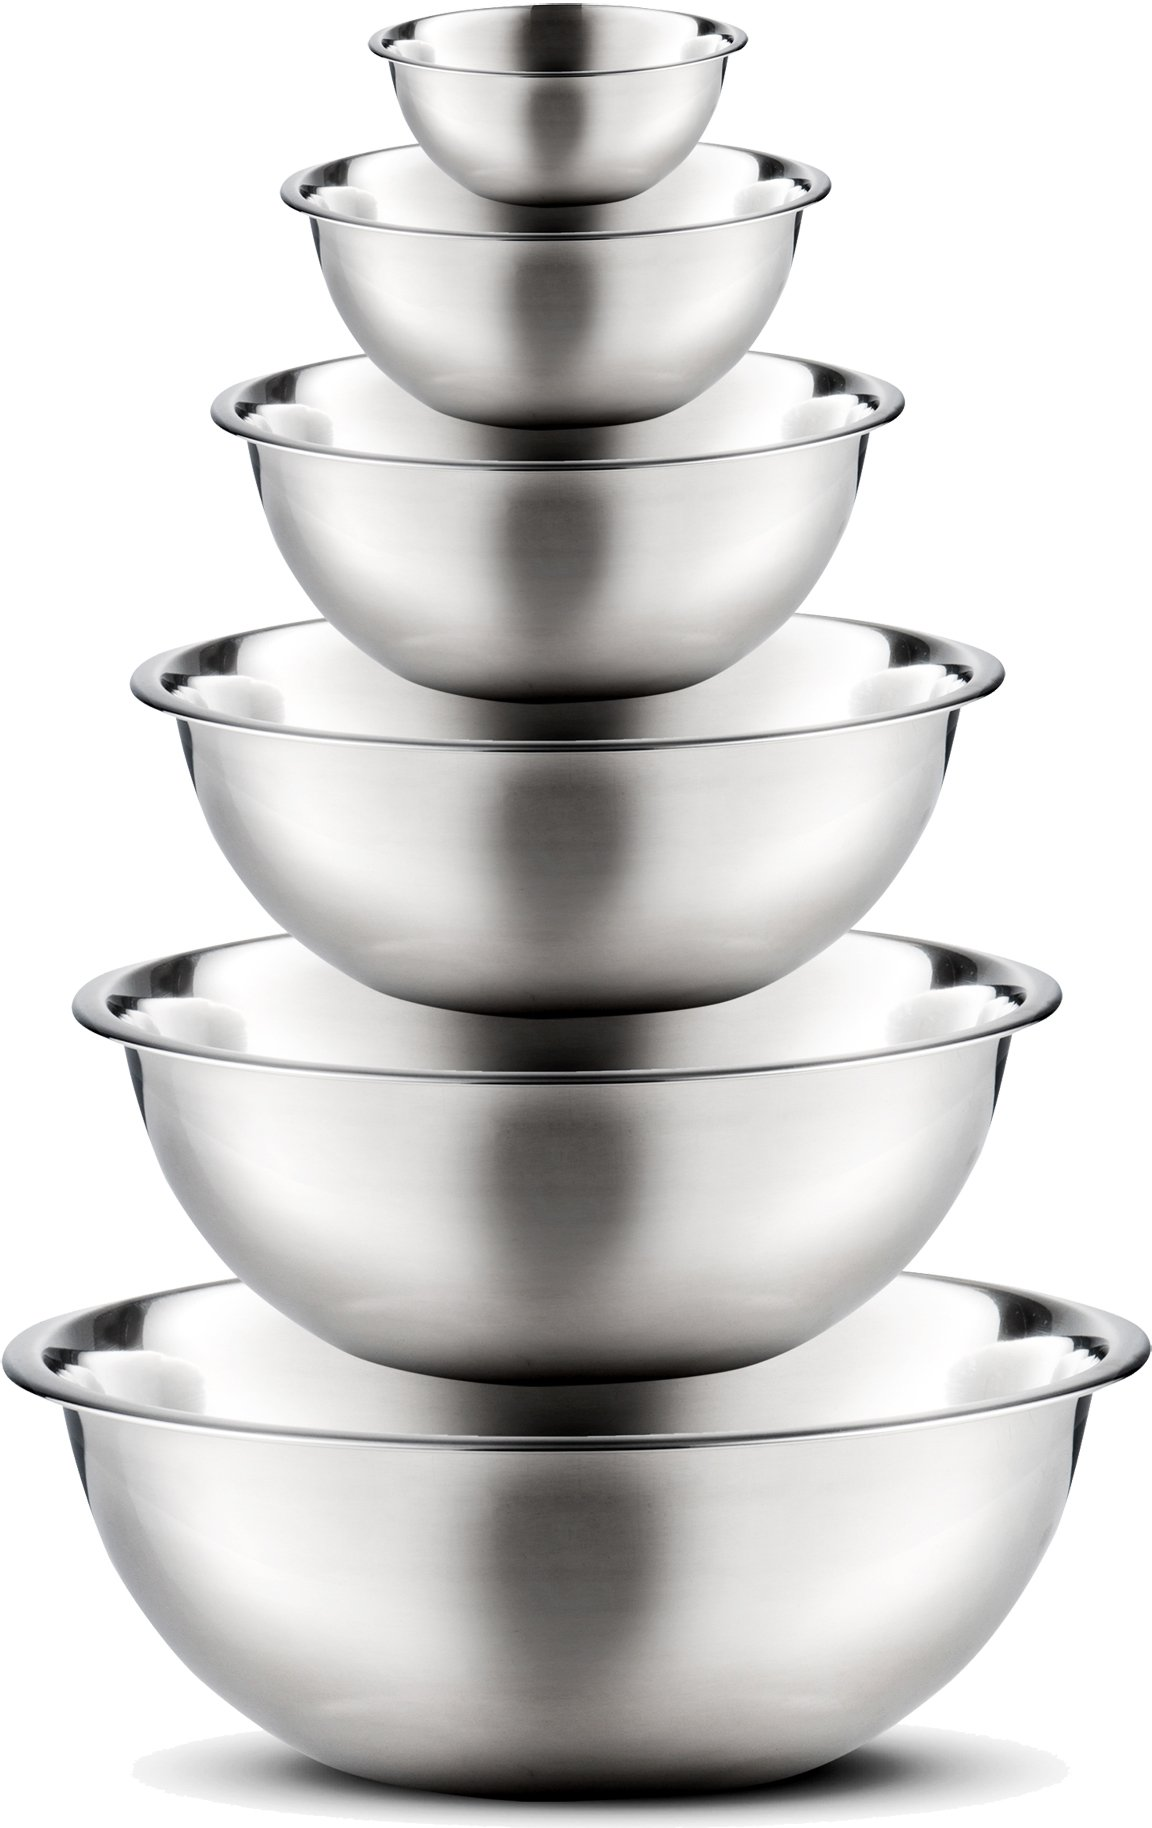 Stainless Steel Mixing Bowls by Finedine (Set of 6) Polished Mirror Finish Nesting Bowl, ¾ - 1.5-3 - 4-5 - 8 Quart - Cooking Supplies by FINEDINE